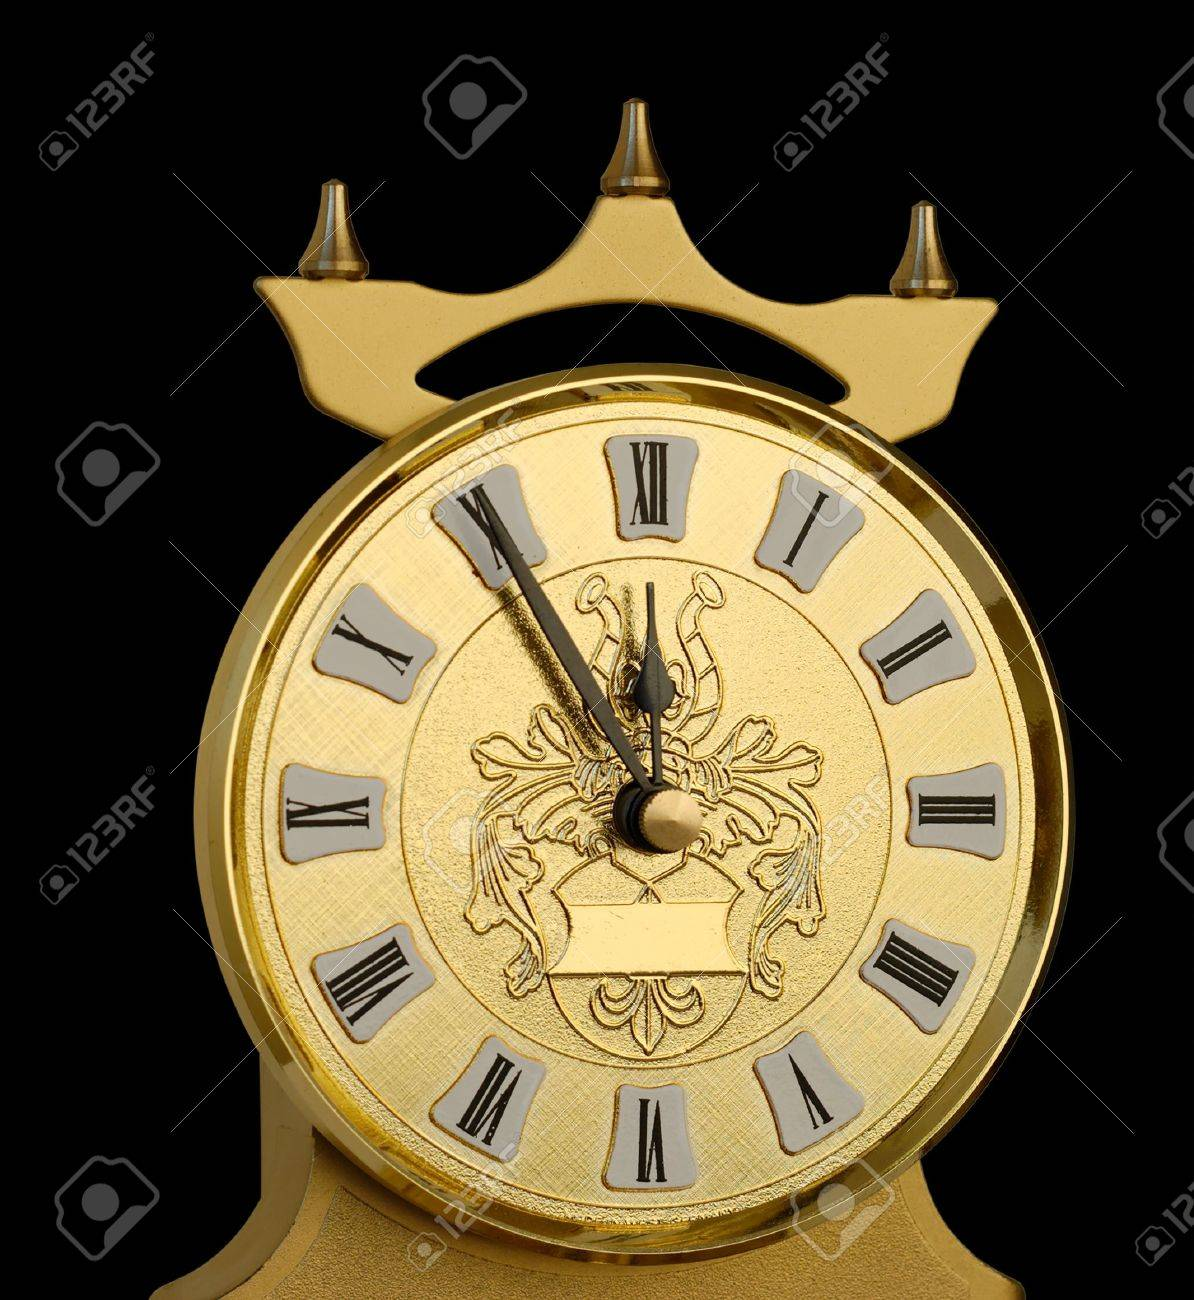 Clock dial showing five minutes to twelve. Stock Photo - 3834648